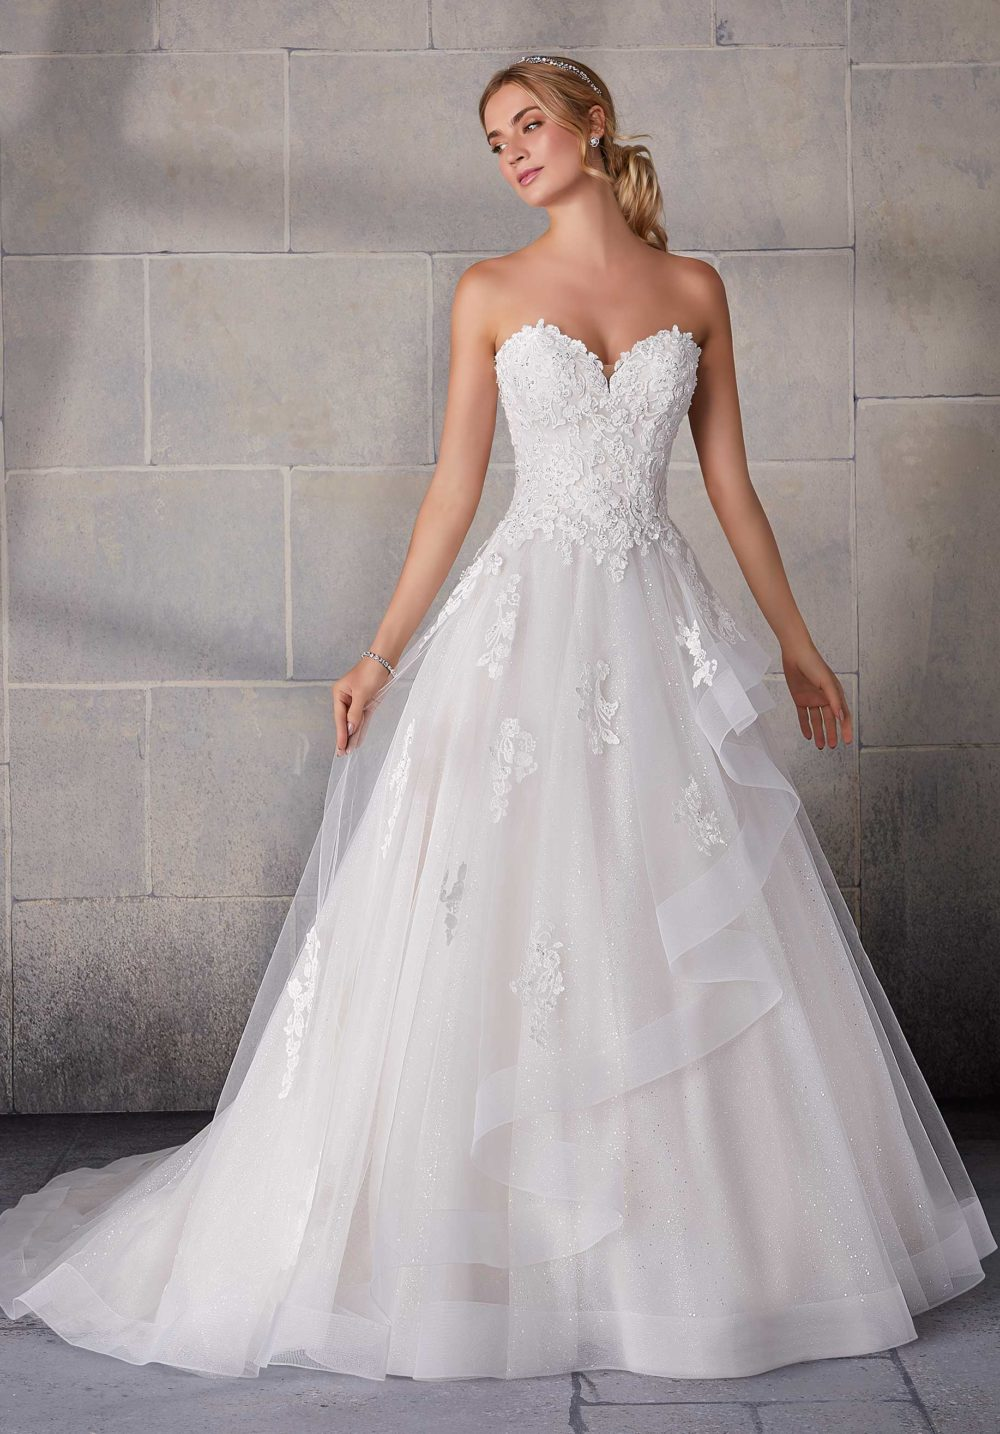 Morilee Wedding Gown Dress style 2140